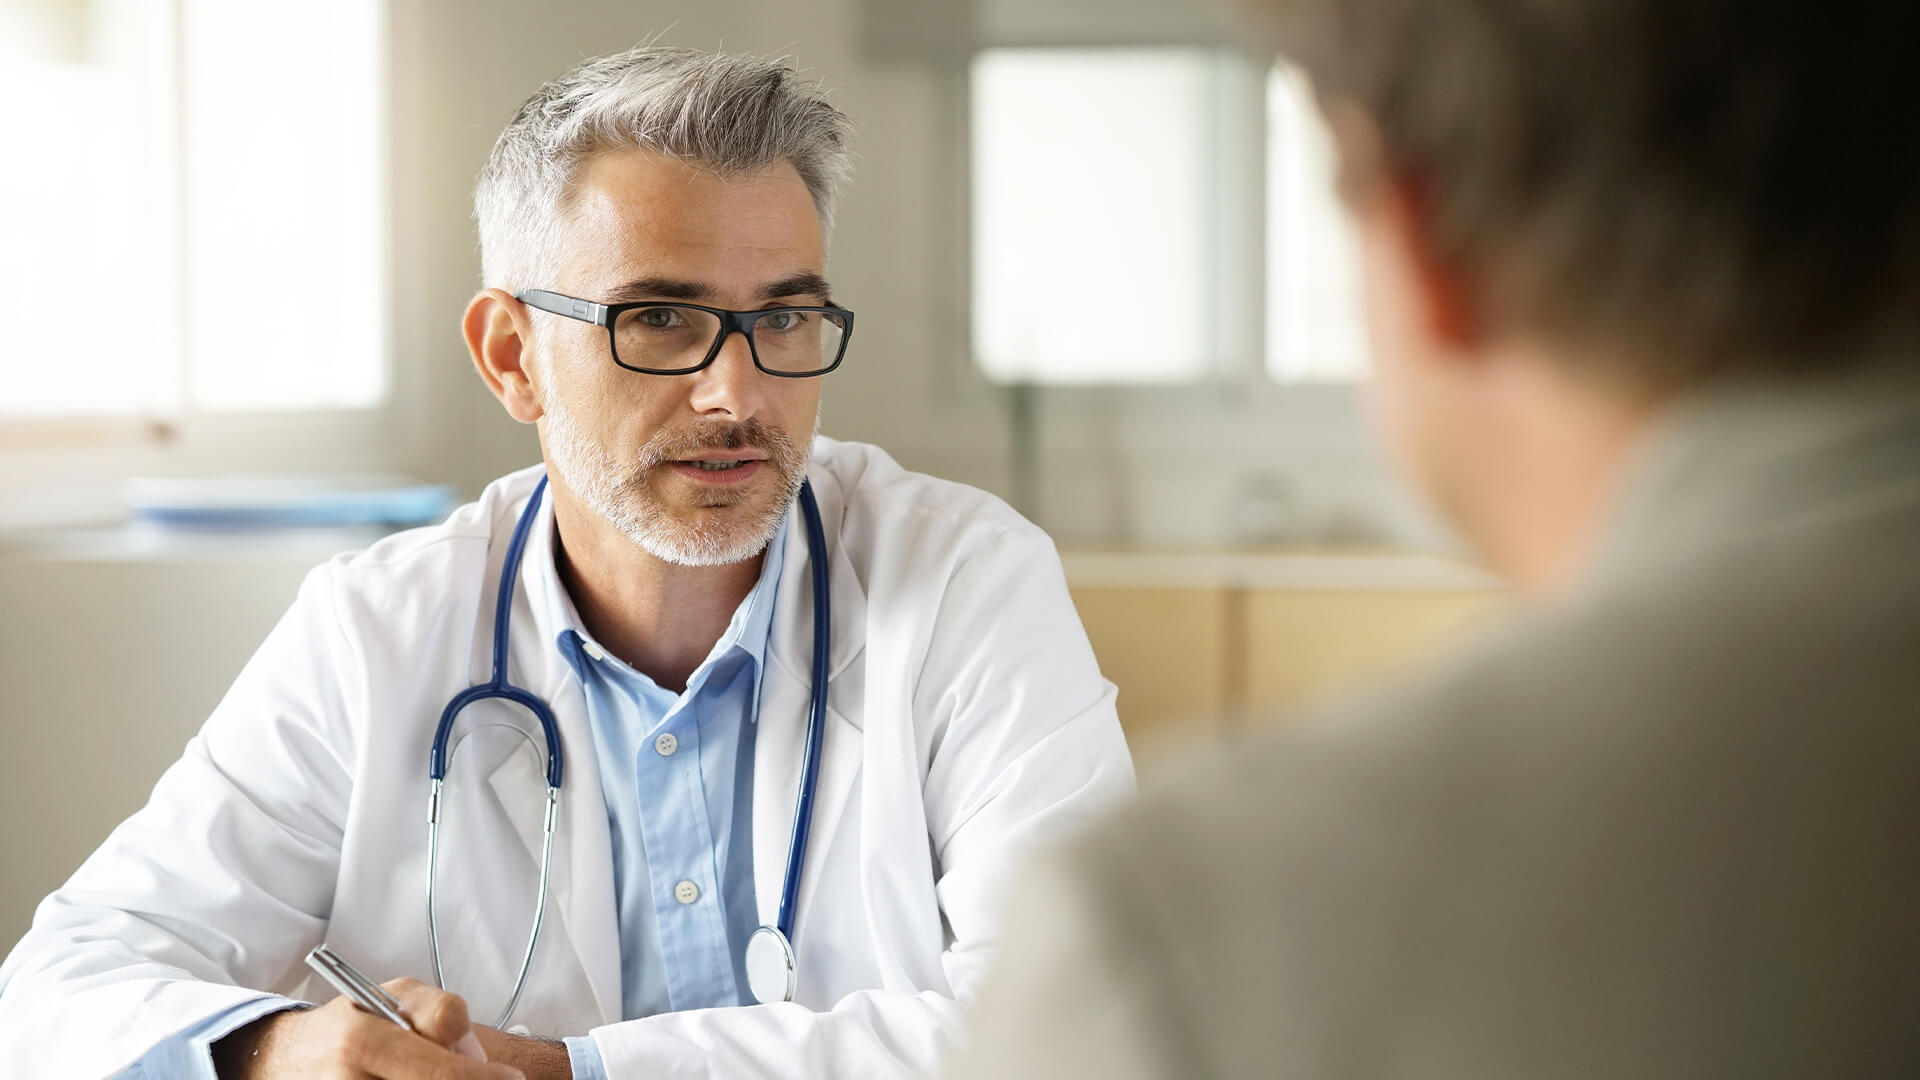 Employees Uncomfortable Taking Time Out for Health Appointments